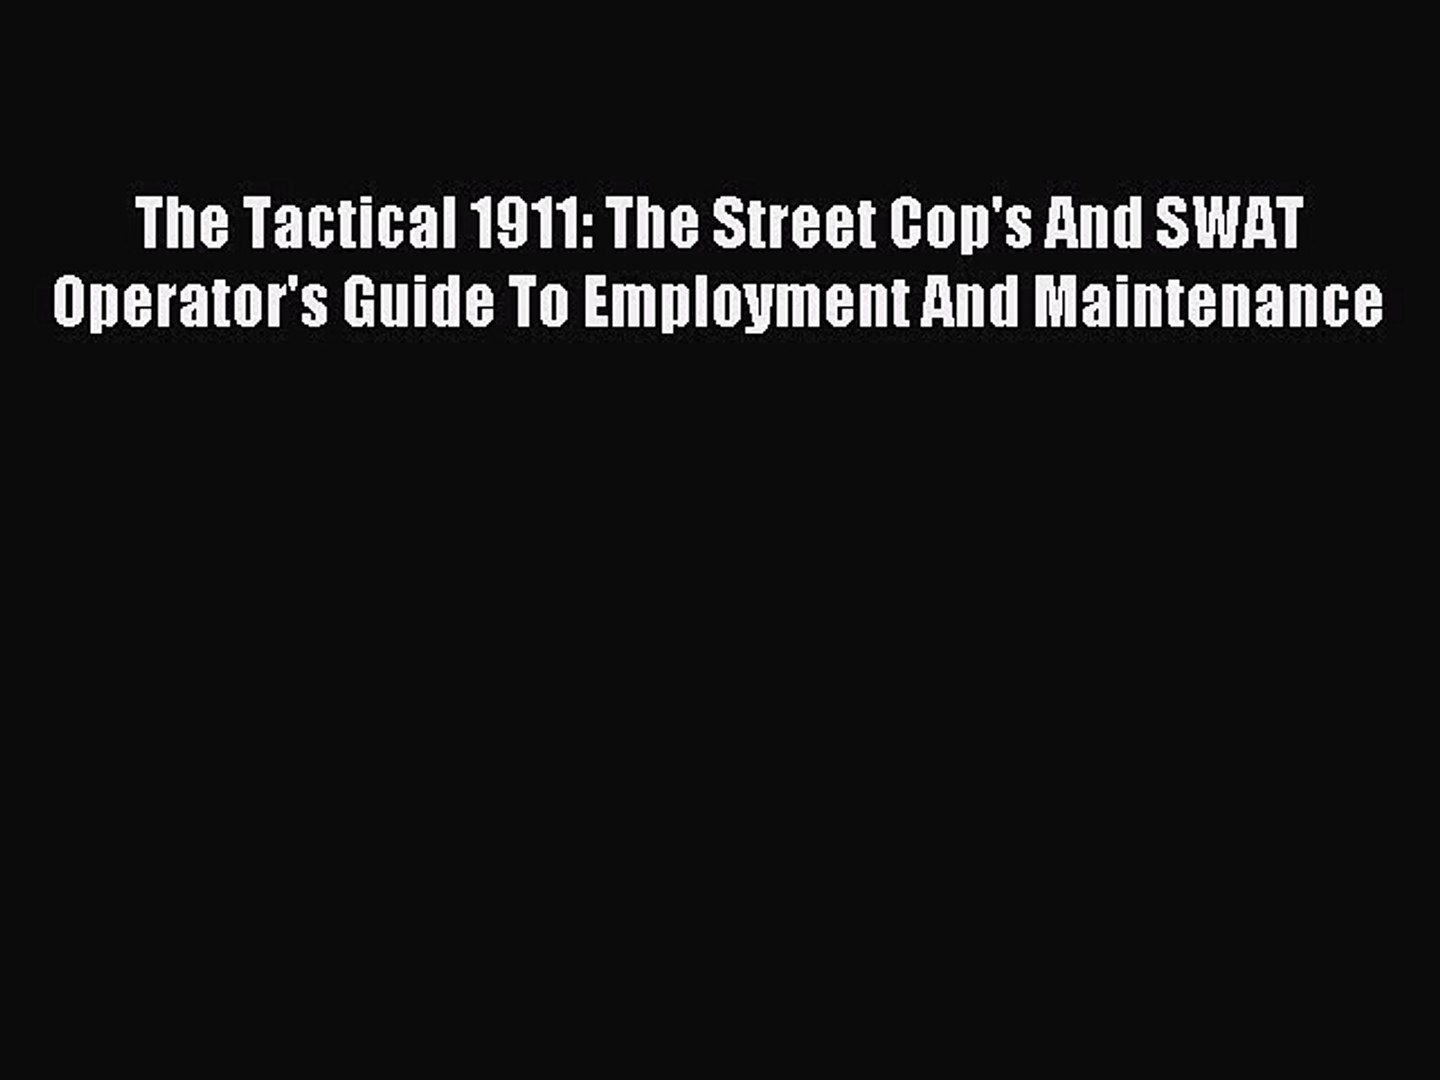 Read The Tactical 1911: The Street Cop's And SWAT Operator's Guide To Employment And Maintenance